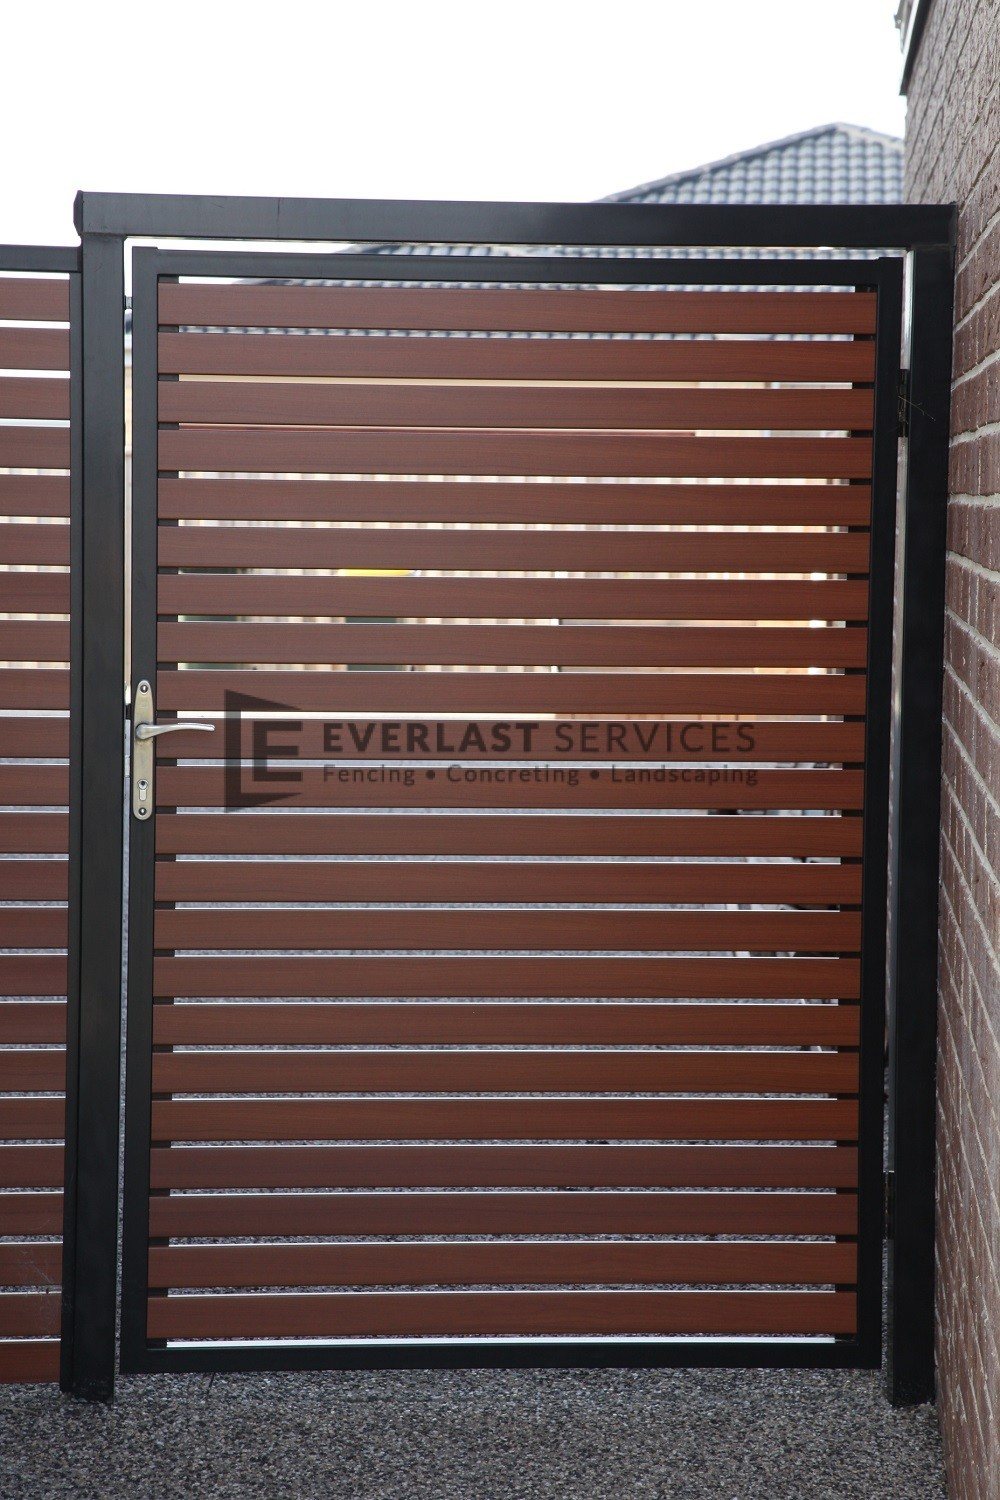 DW13 - Horizontal Aluminium slat door - Werribee & DW13 - Horizontal Aluminium slat door - Werribee - Everlast Services